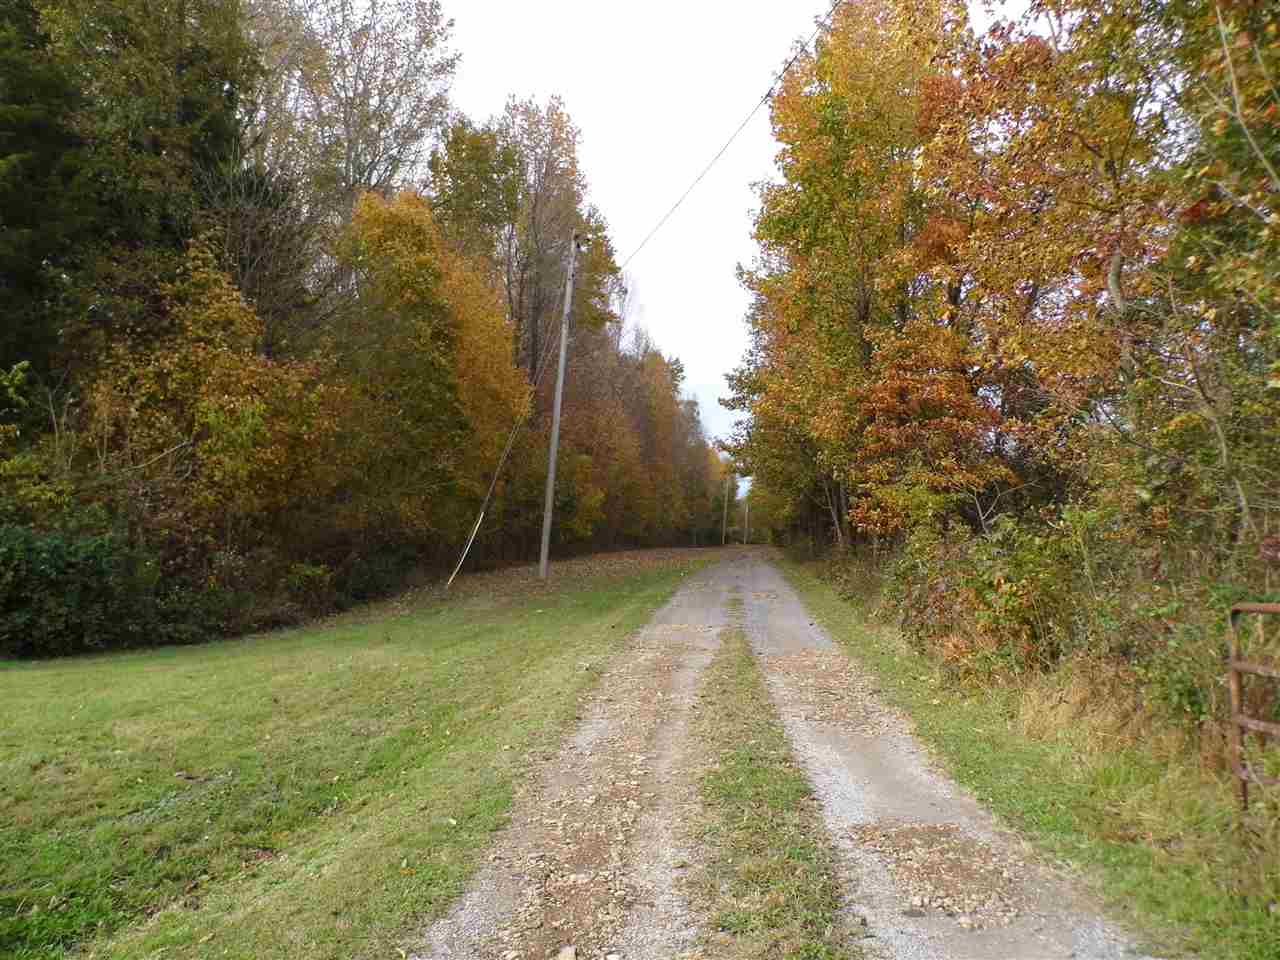 300 Feet from road to dead end into property